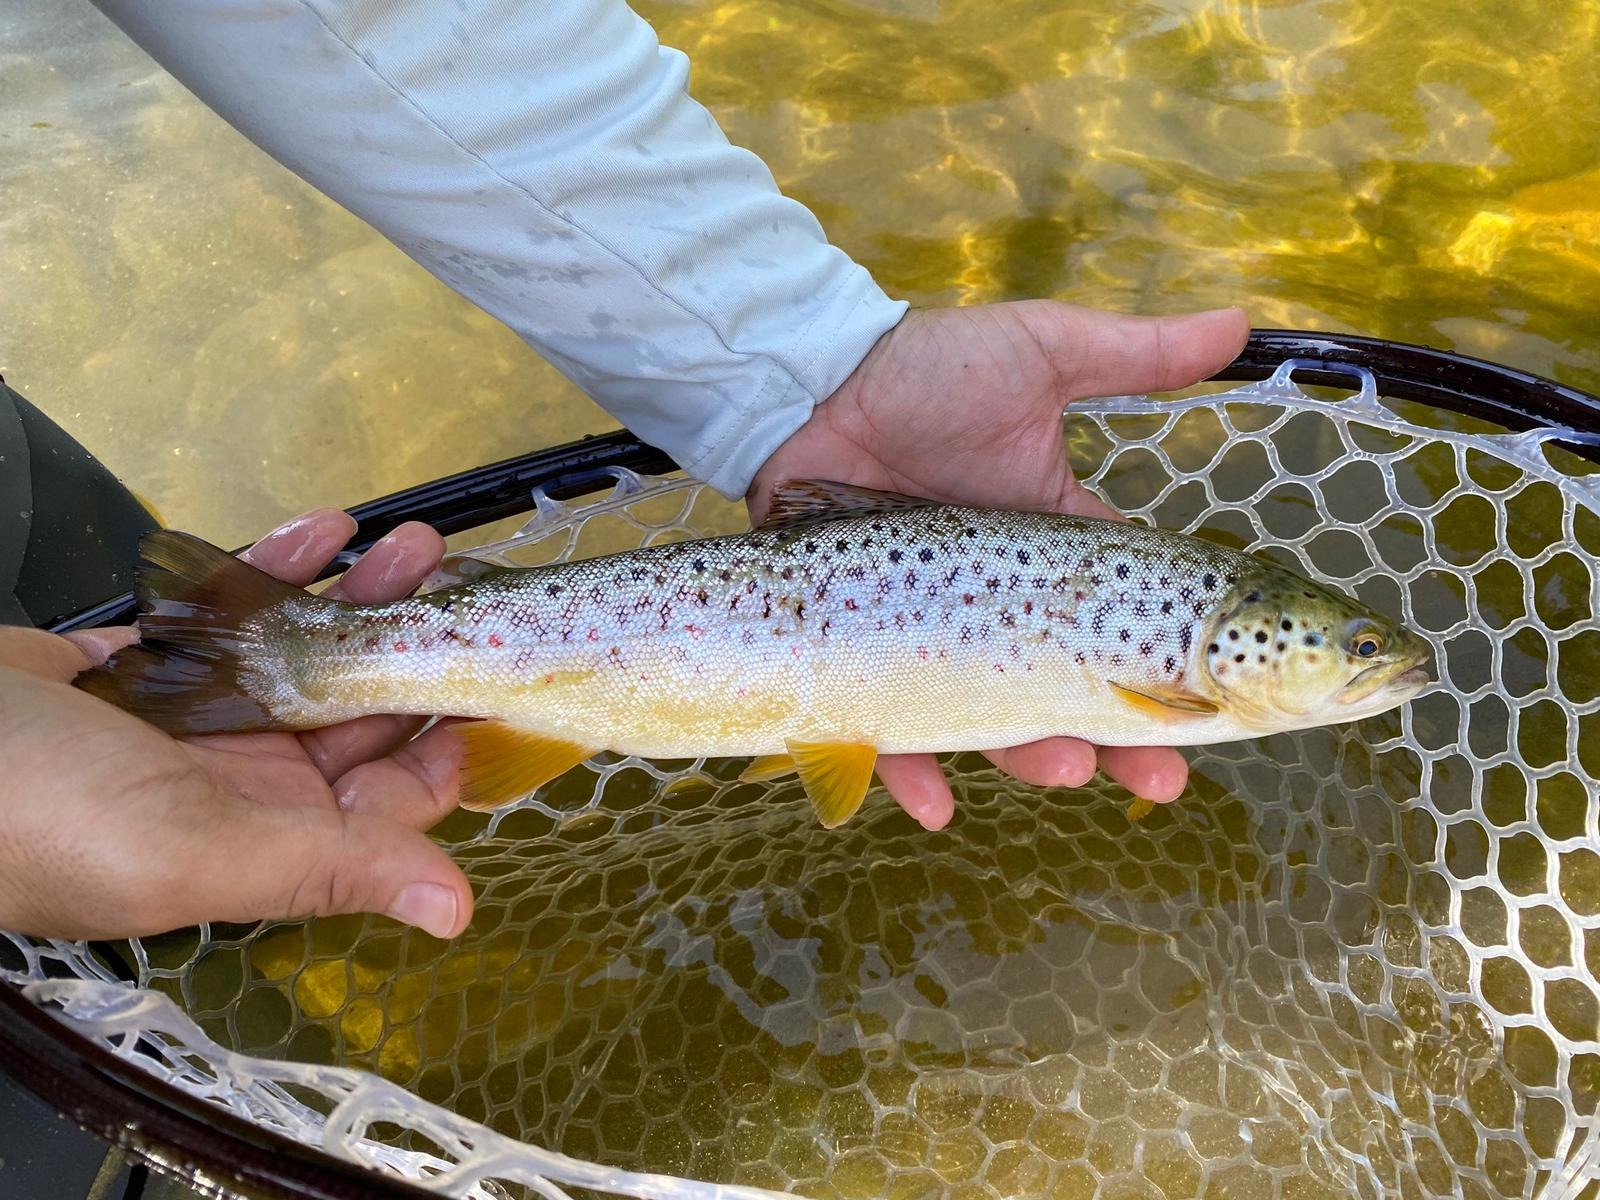 FLY FISHING TROUT WITH DROWNED FLIES